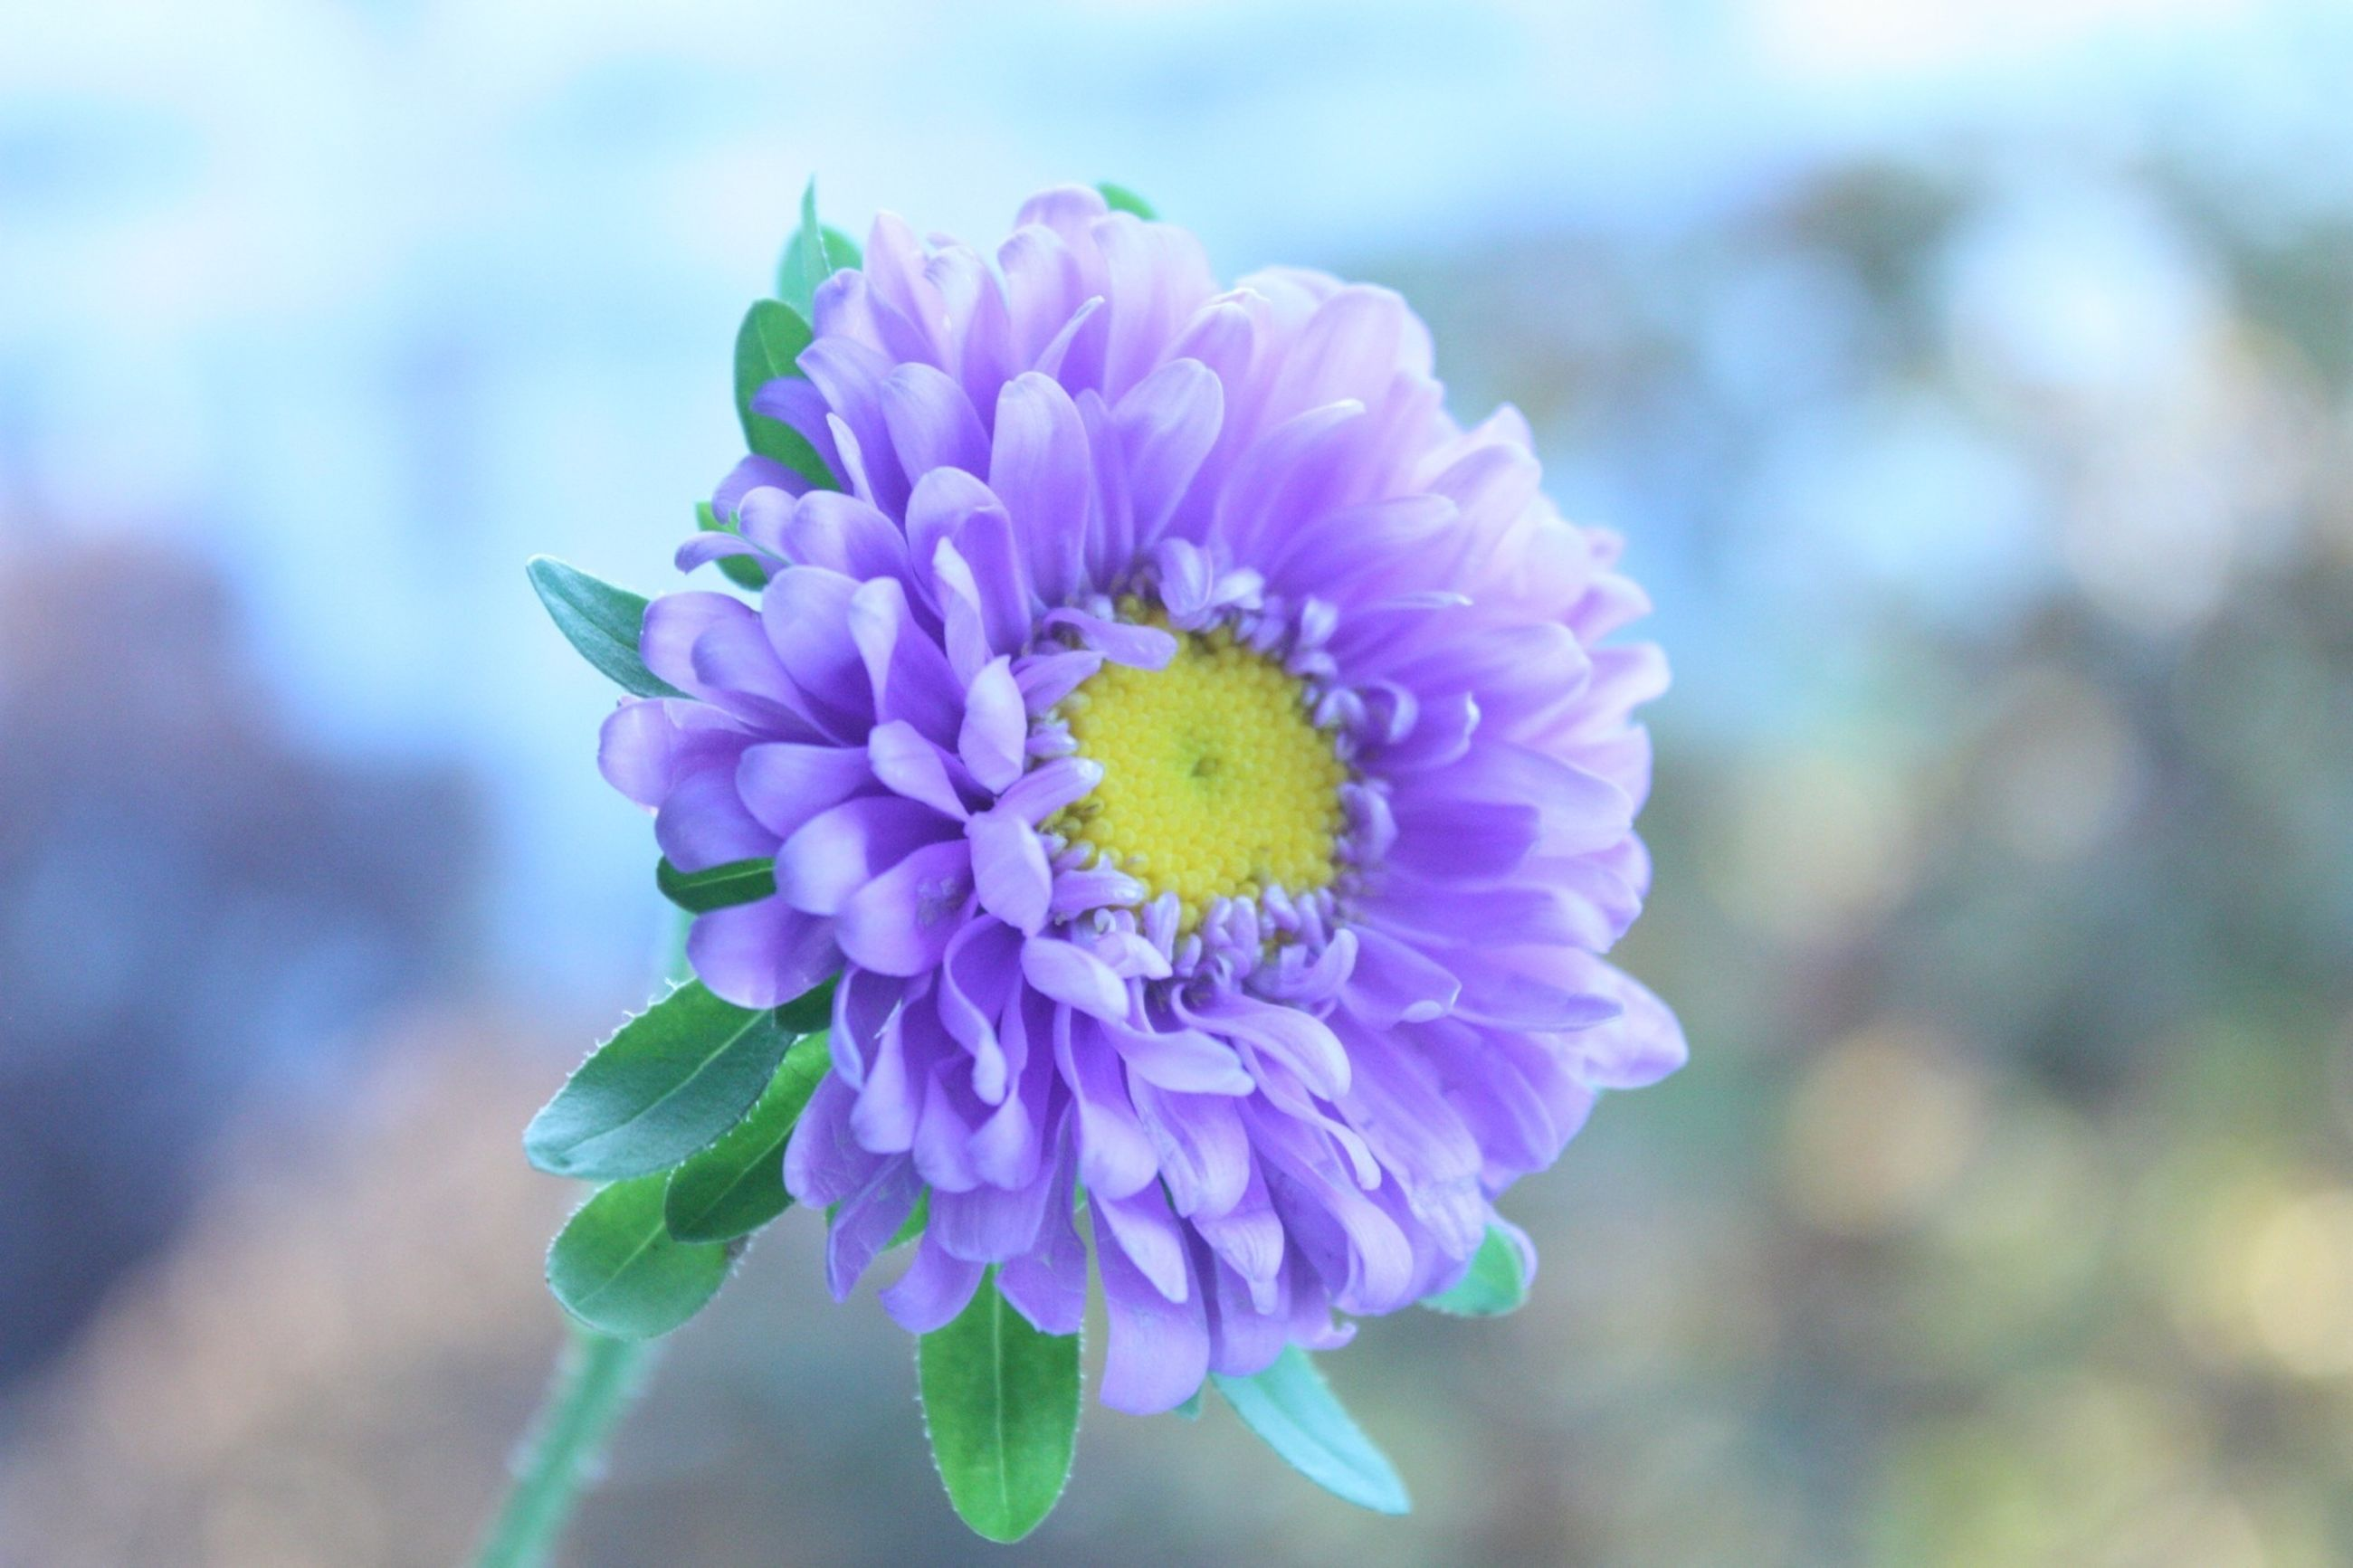 flower, petal, freshness, flower head, fragility, purple, growth, beauty in nature, close-up, focus on foreground, blooming, nature, plant, single flower, pollen, in bloom, yellow, outdoors, blossom, springtime